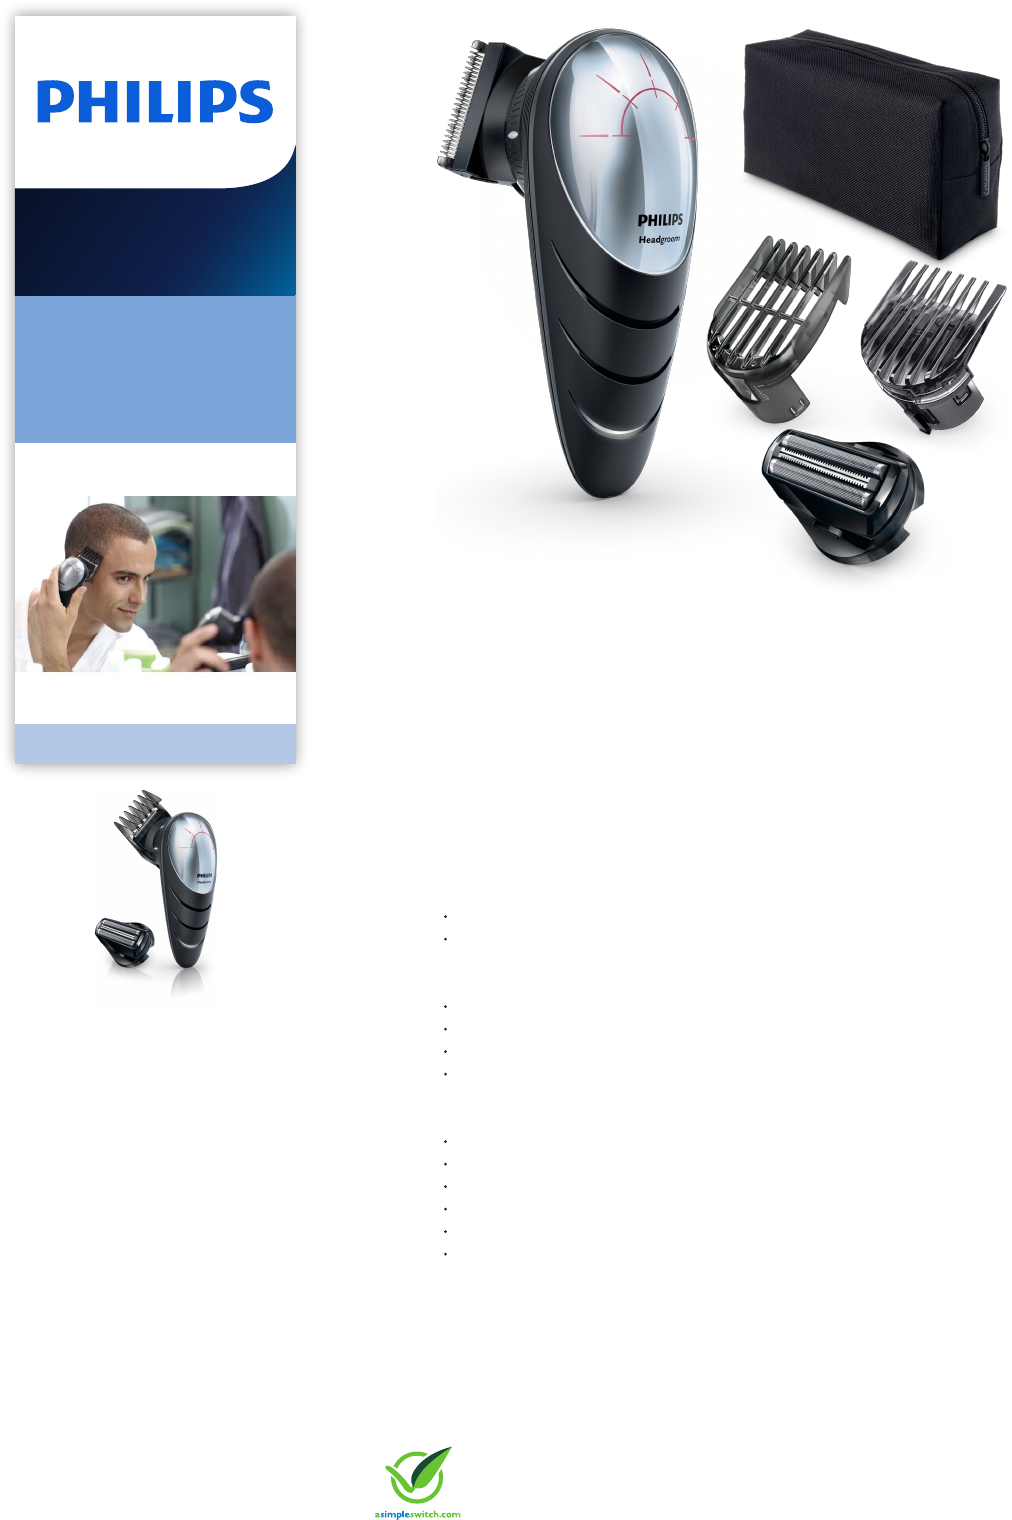 Philips qc558032 do it yourself hair clipper user manual leaflet philips qc558032 do it yourself hair clipper user manual leaflet qc5580 32 pss solutioingenieria Choice Image